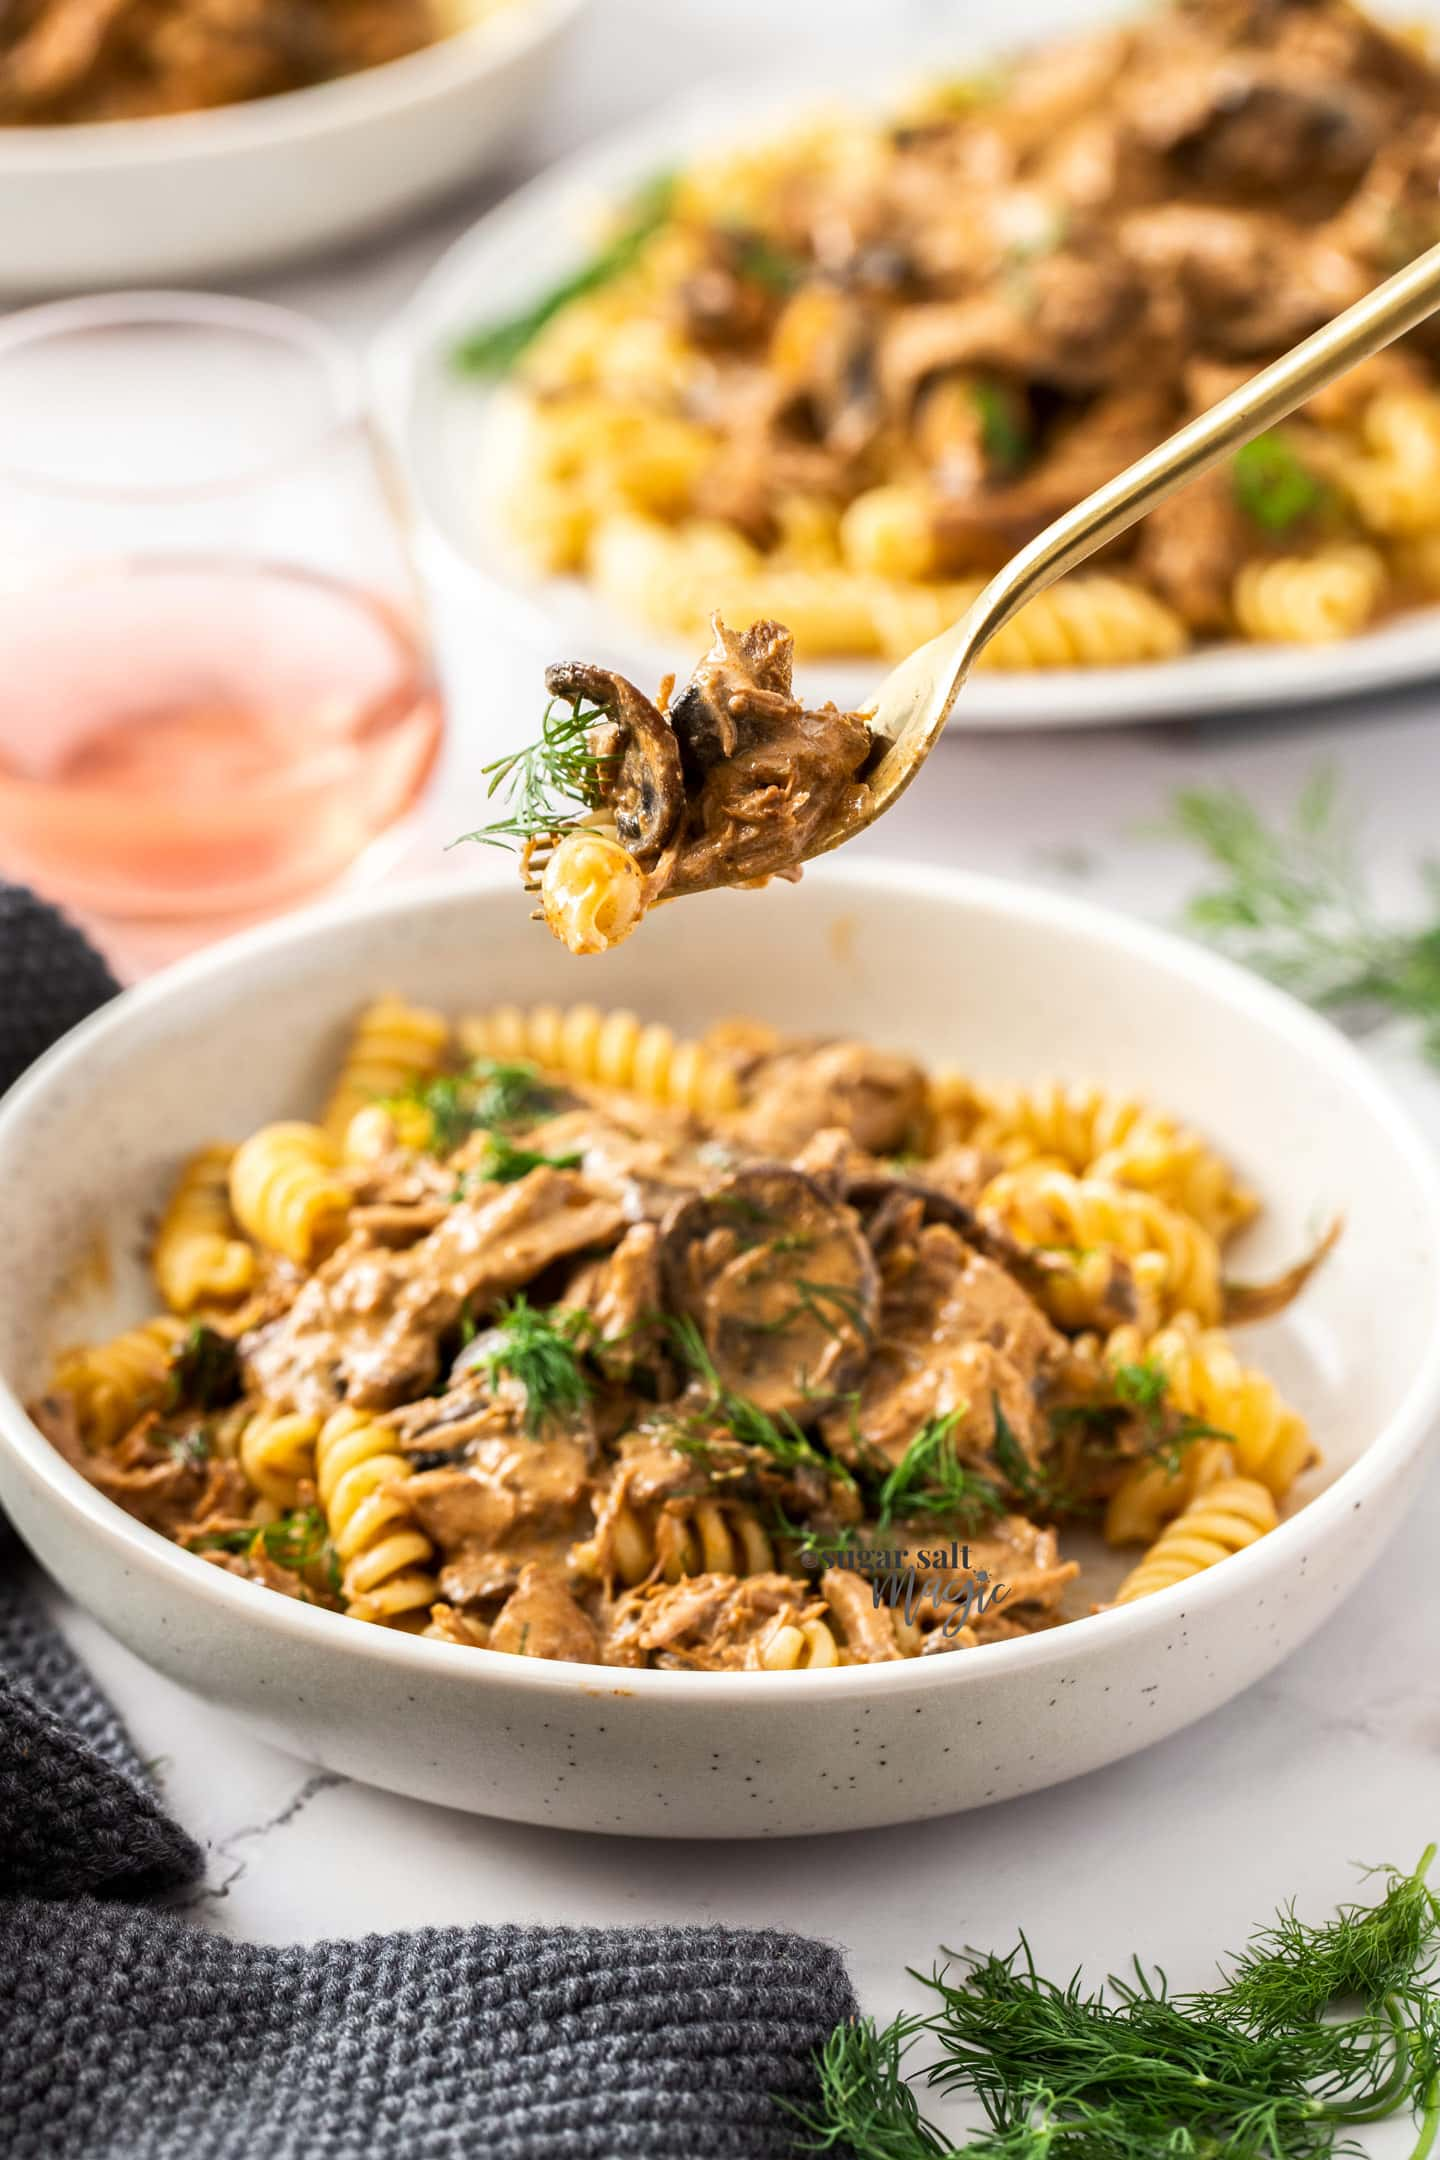 A fork with meat and pasta being taken from a bowl.